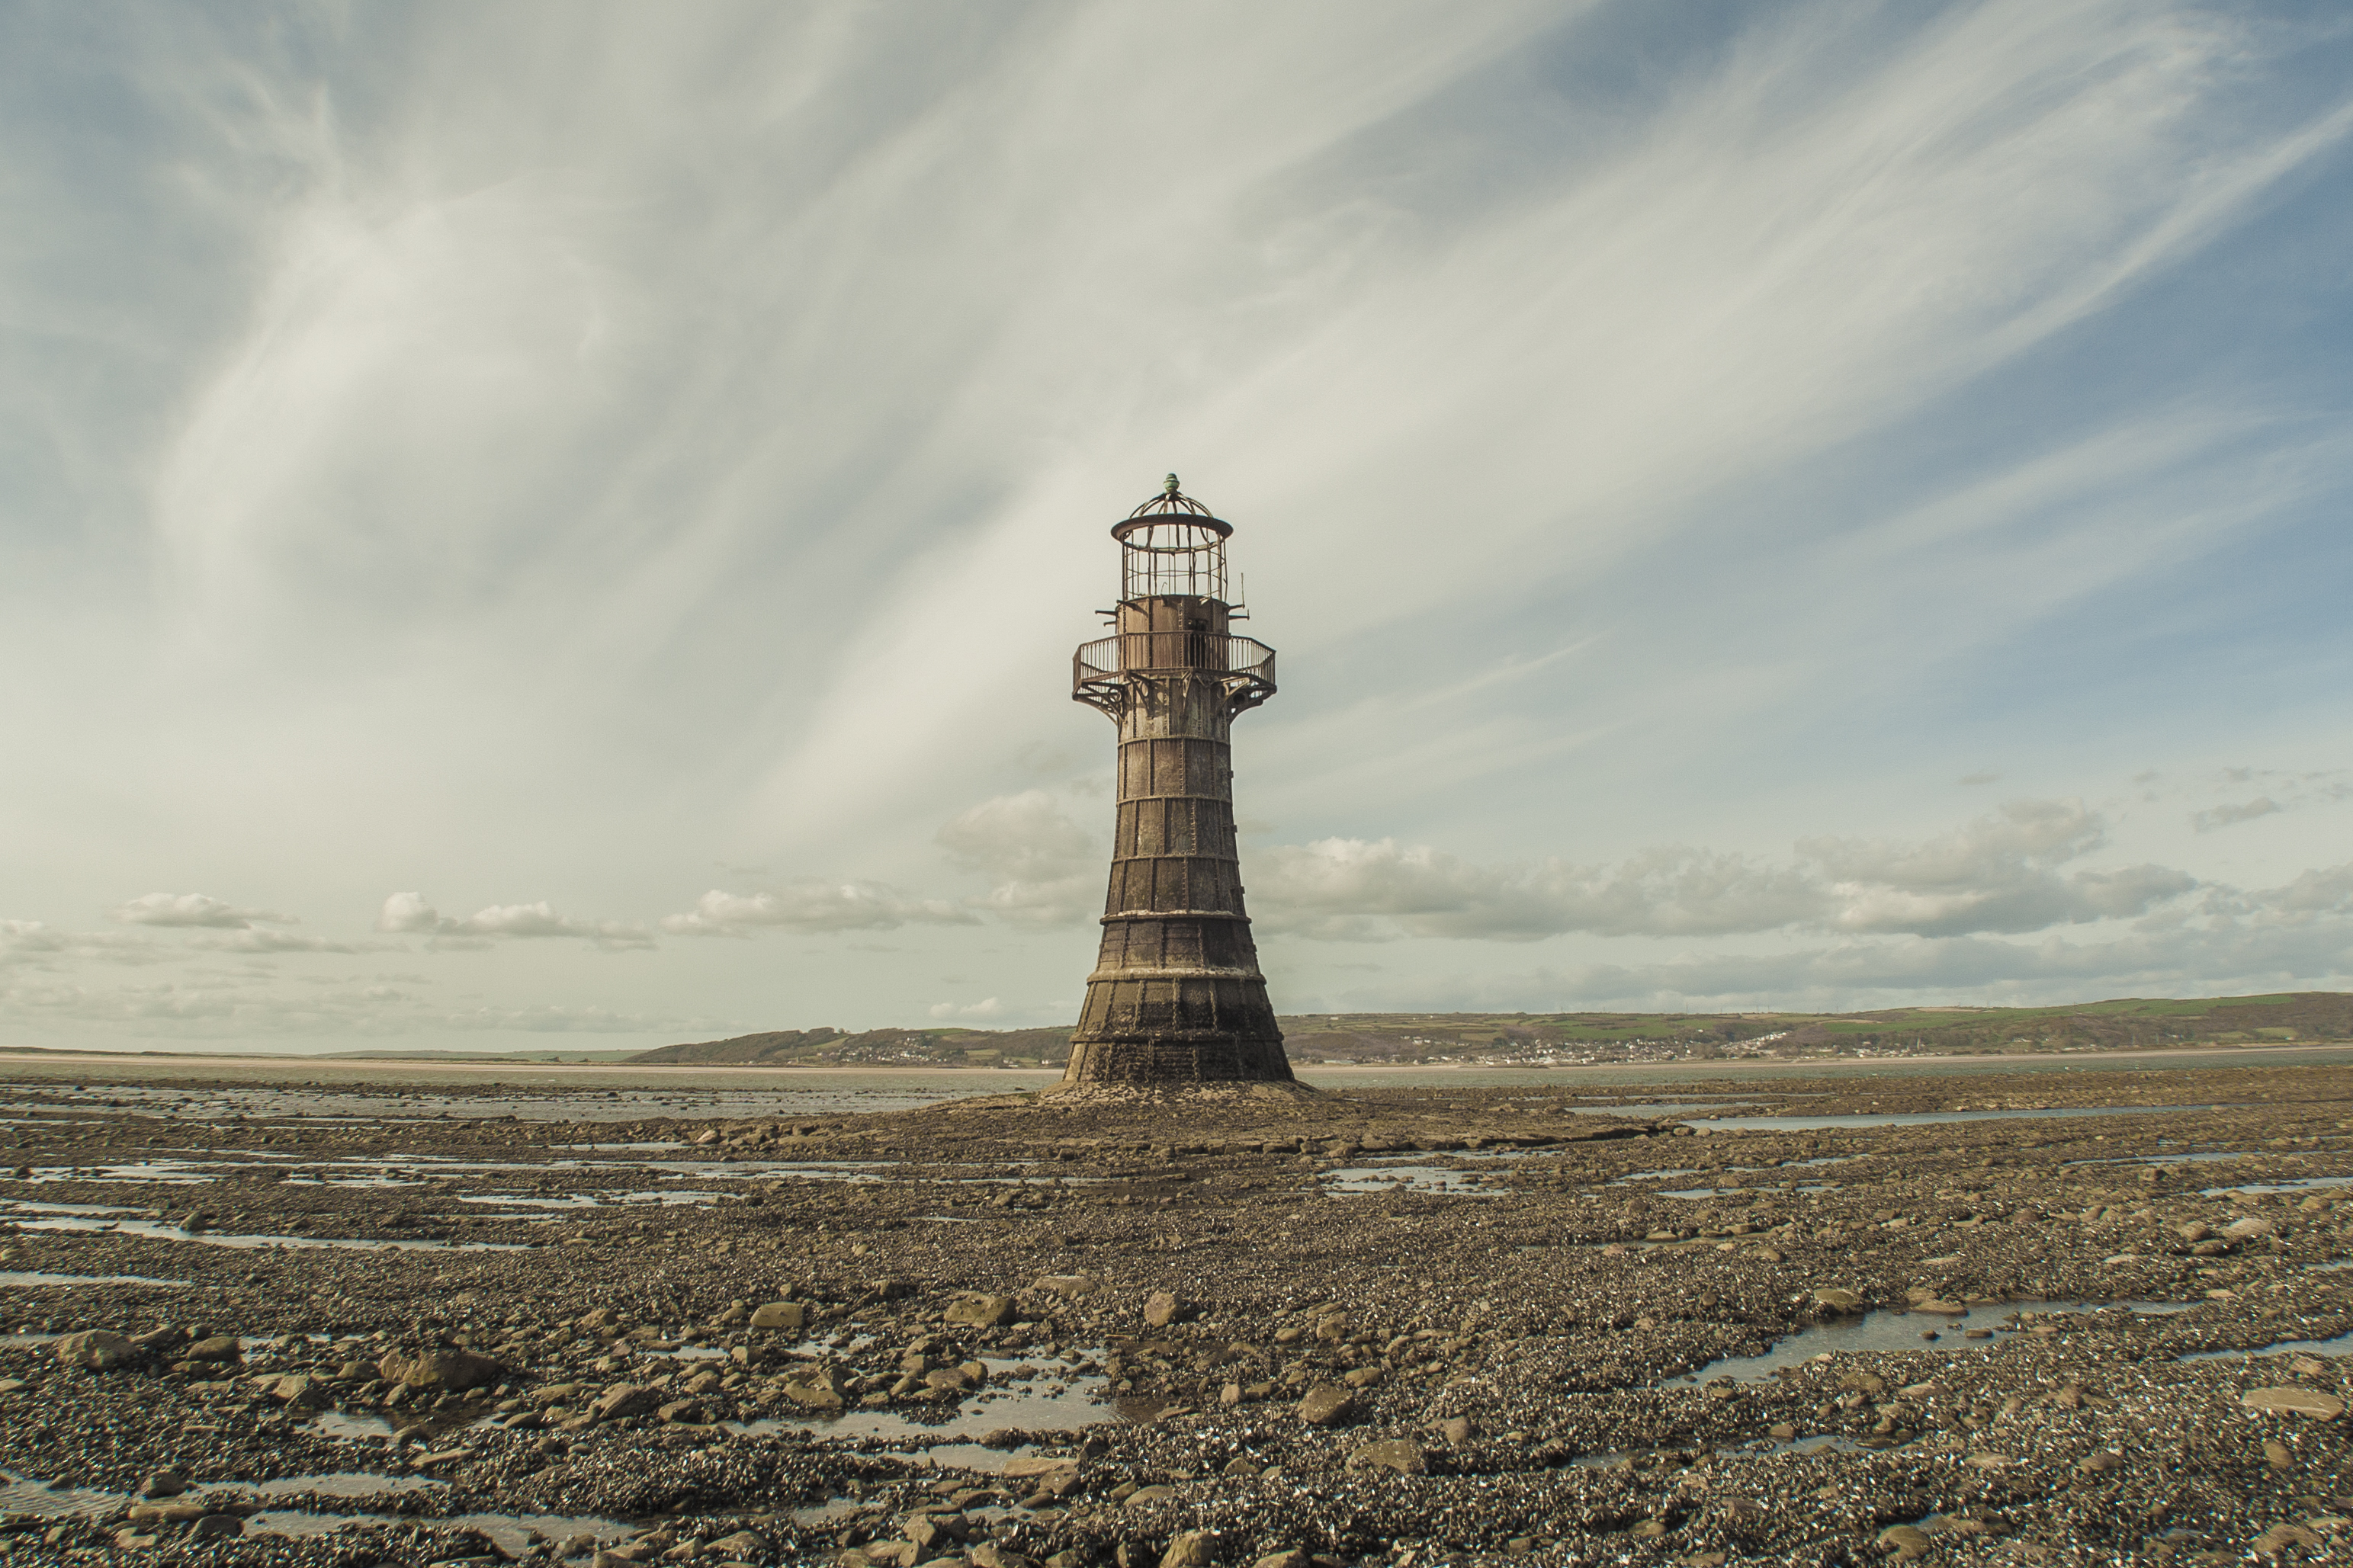 Abandoned lighthouse in Llanmadoc on brown ground against blue sky with clouds